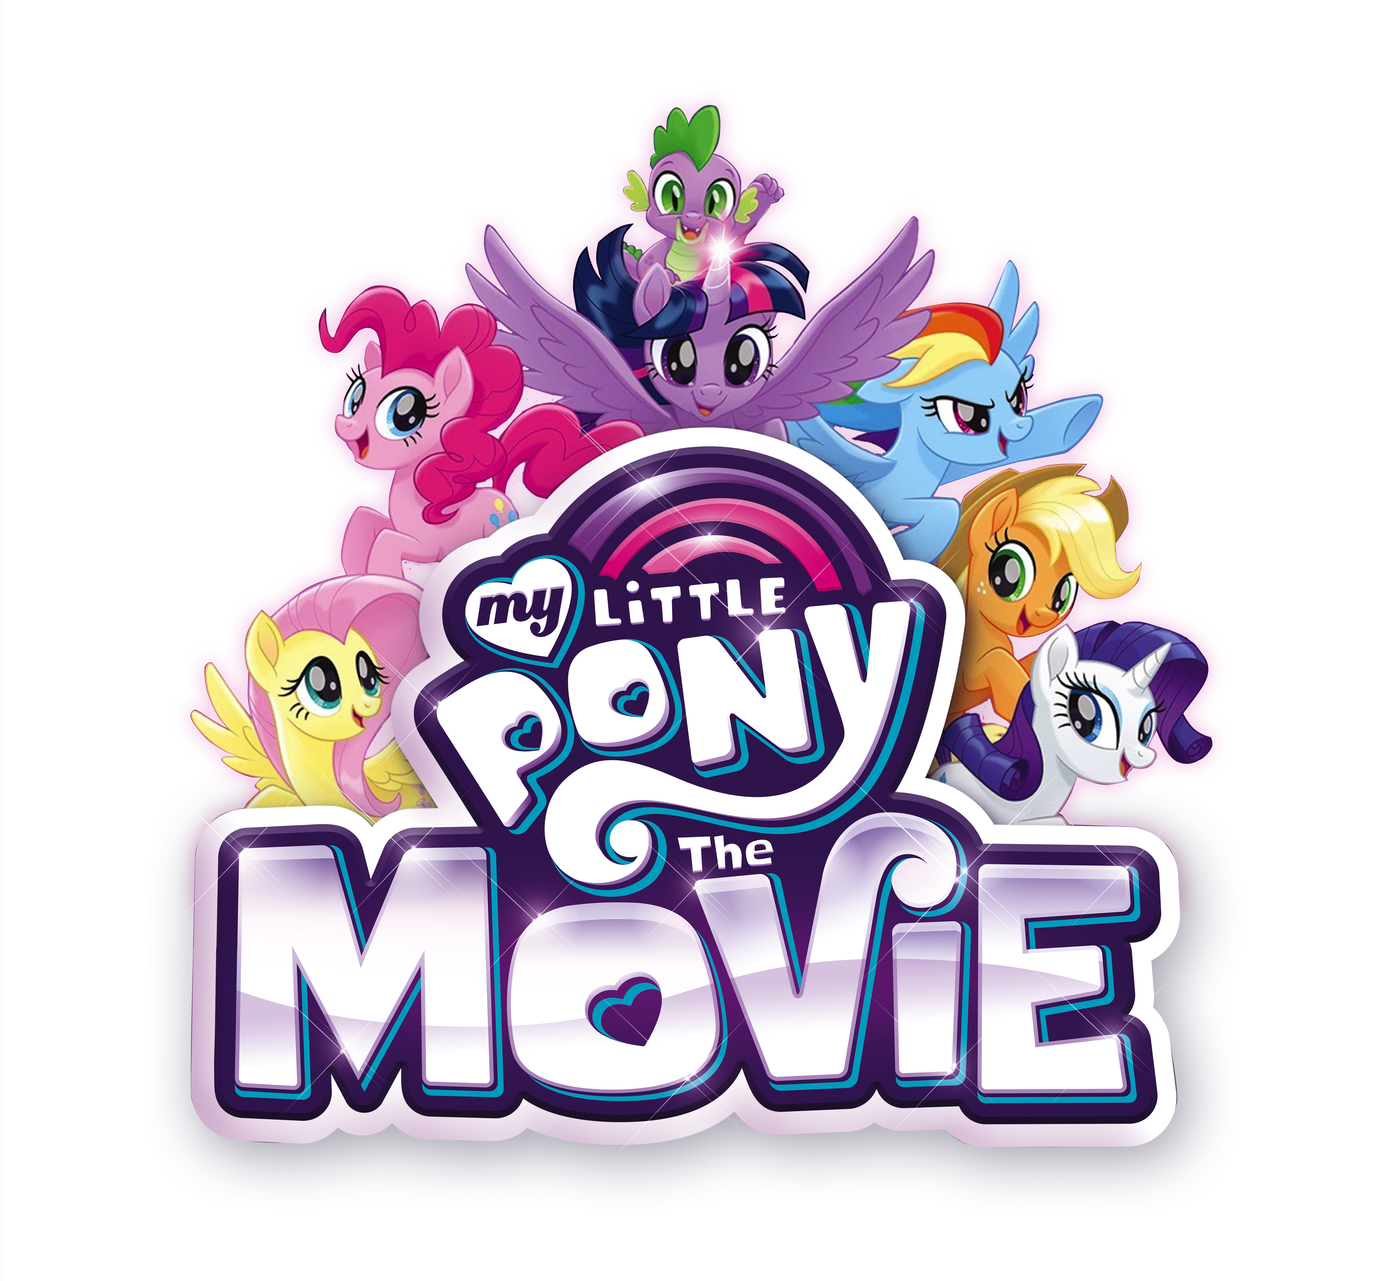 My Little Pony The Movie Title Treatment